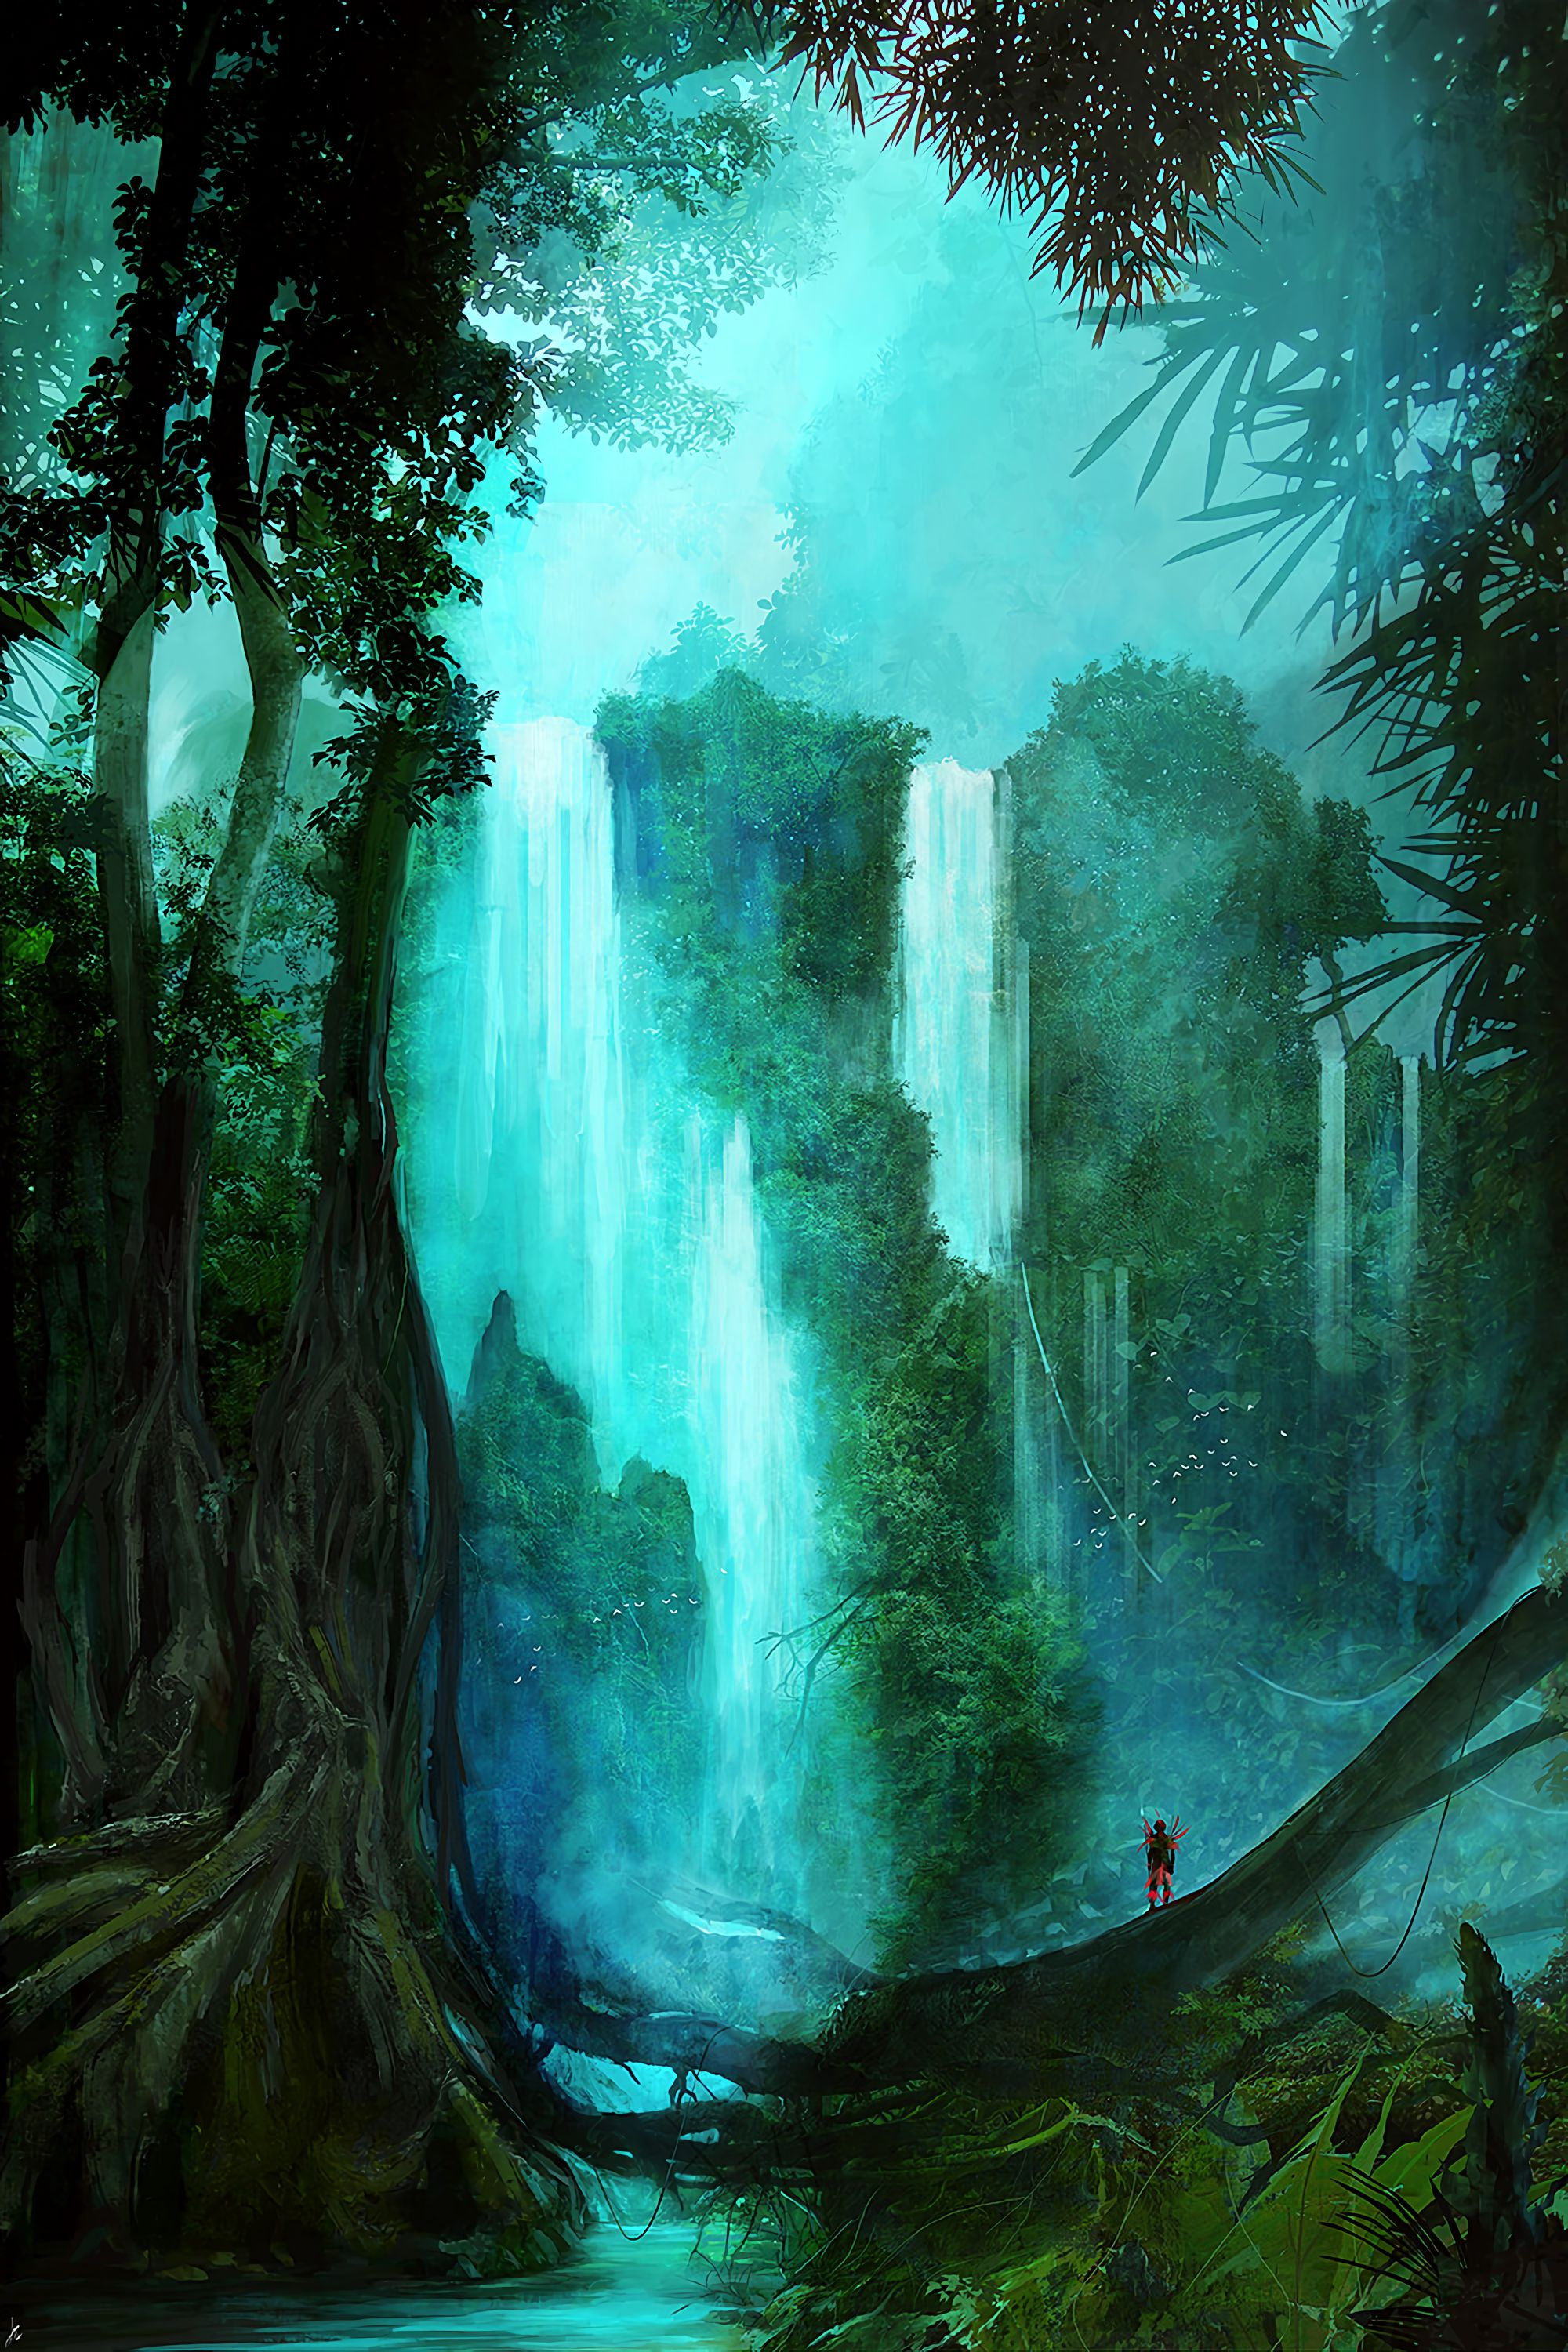 65379 download wallpaper Waterfall, Forest, Trees, Silhouette, Art screensavers and pictures for free